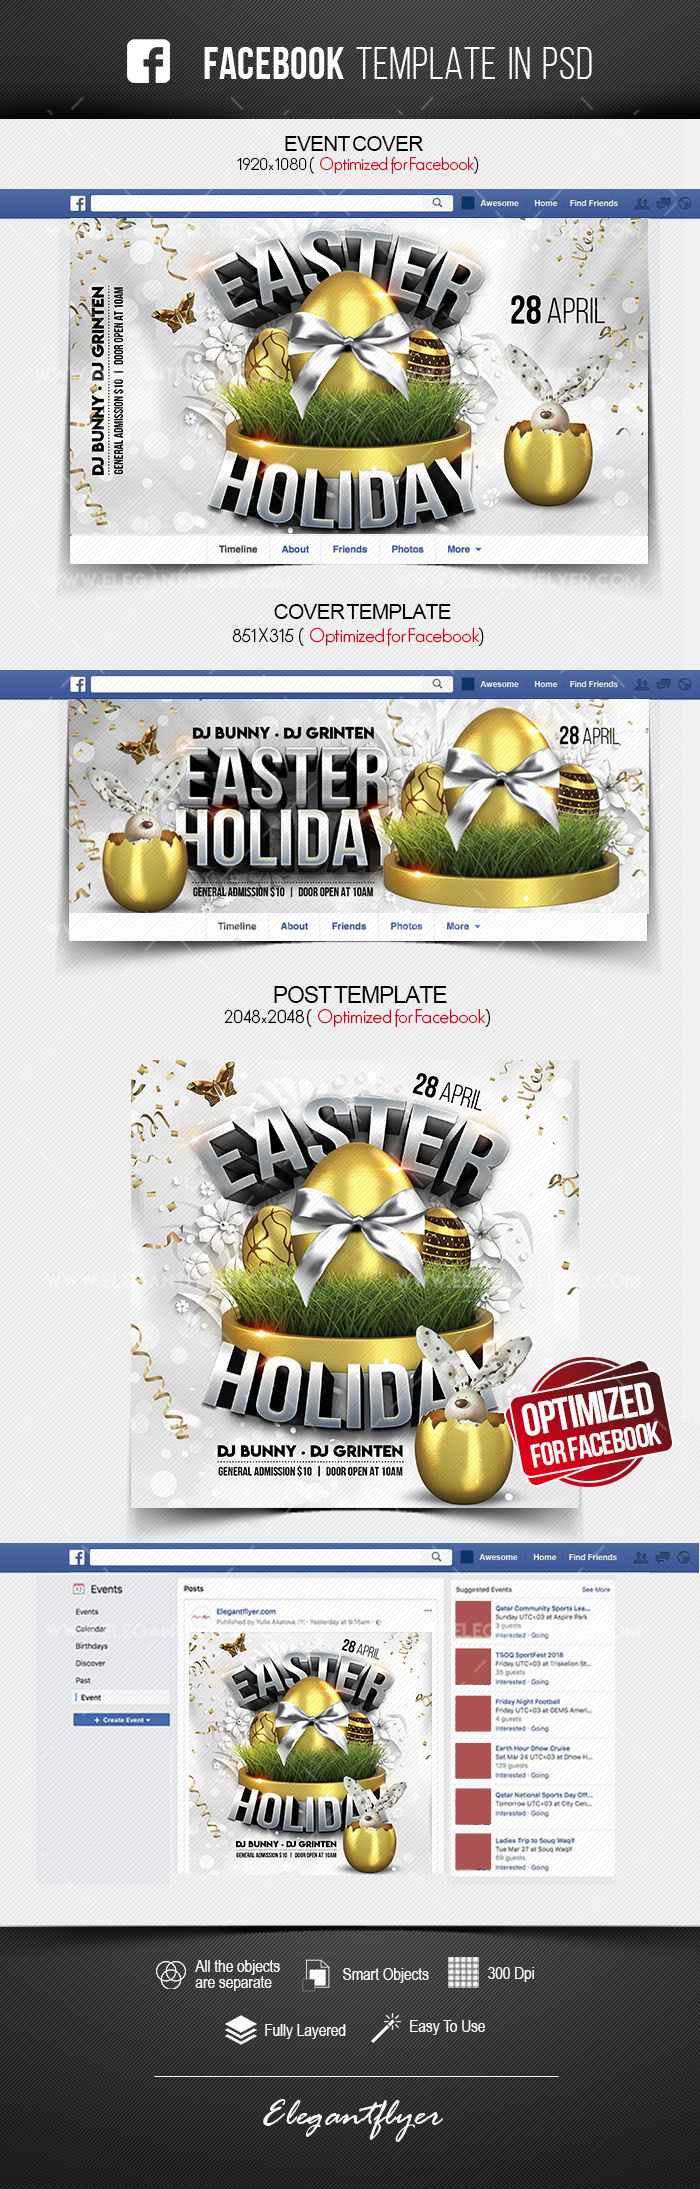 Easter Holiday – Facebook Cover Template in PSD + Post + Event cover